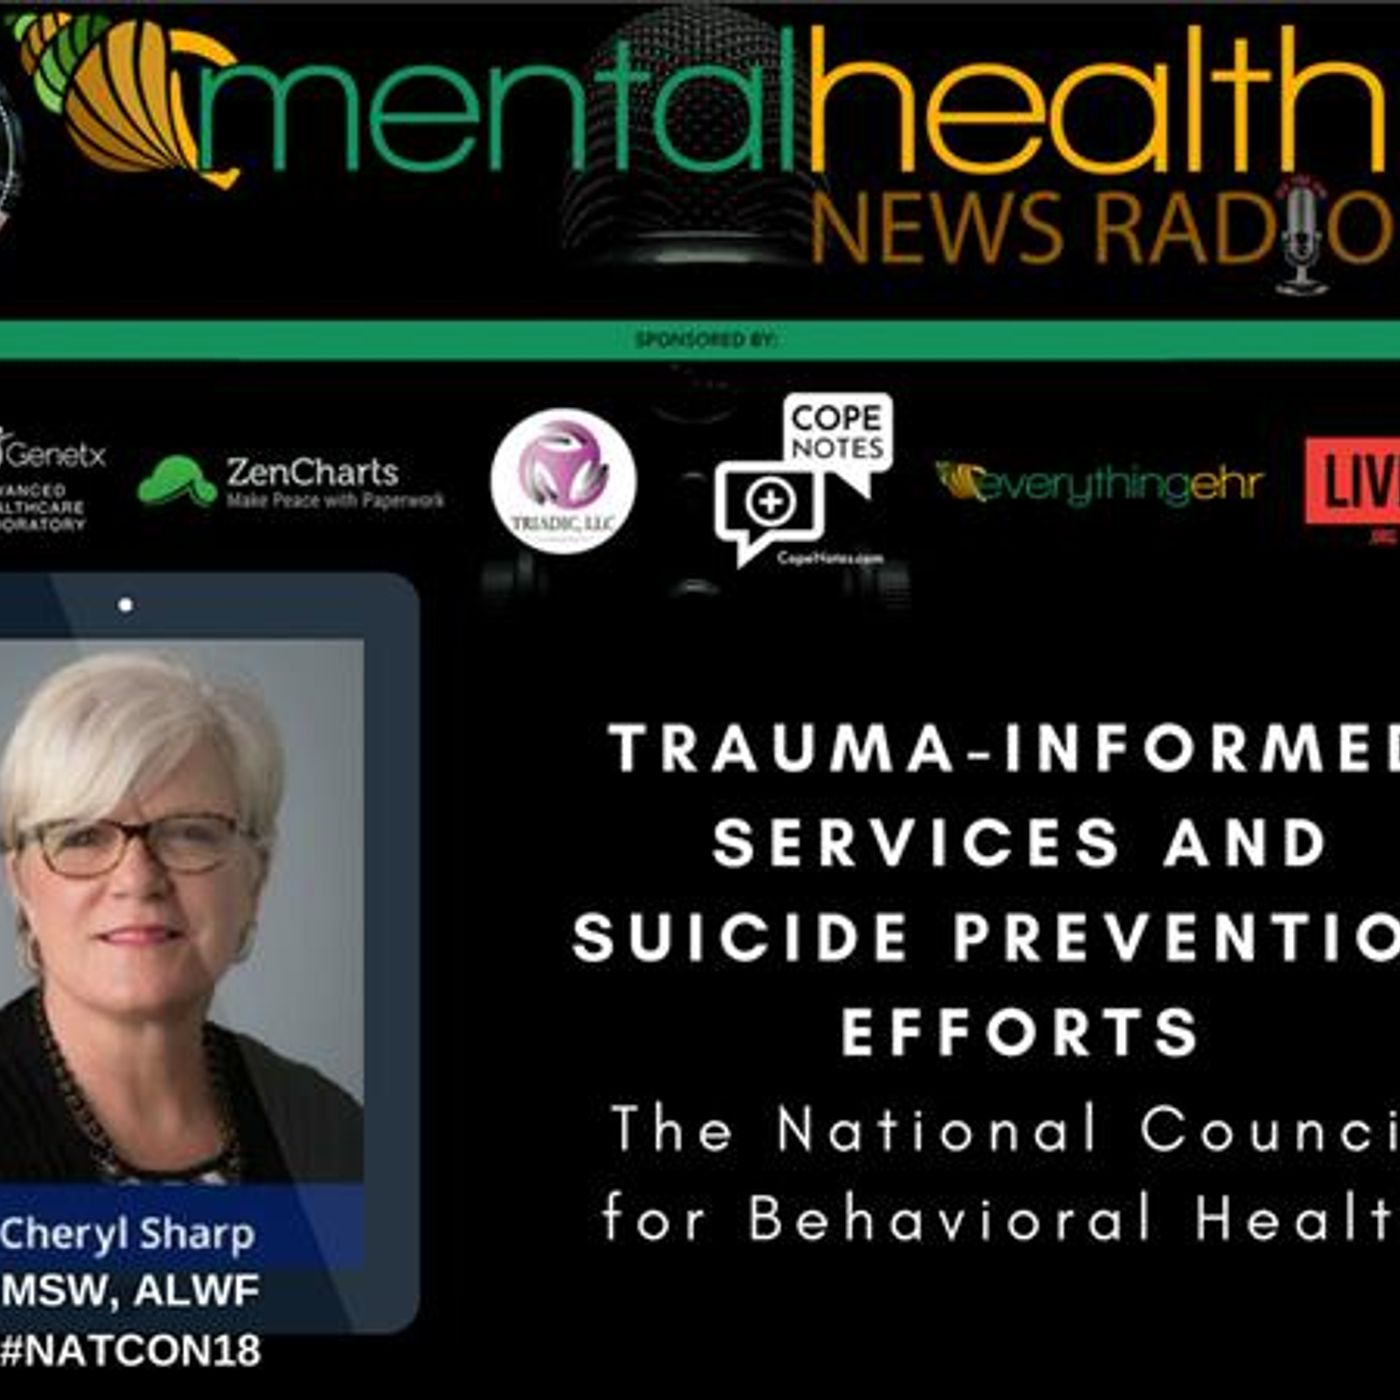 Mental Health News Radio - Trauma-Informed Services and Suicide Prevention Efforts with Cheryl Sharp